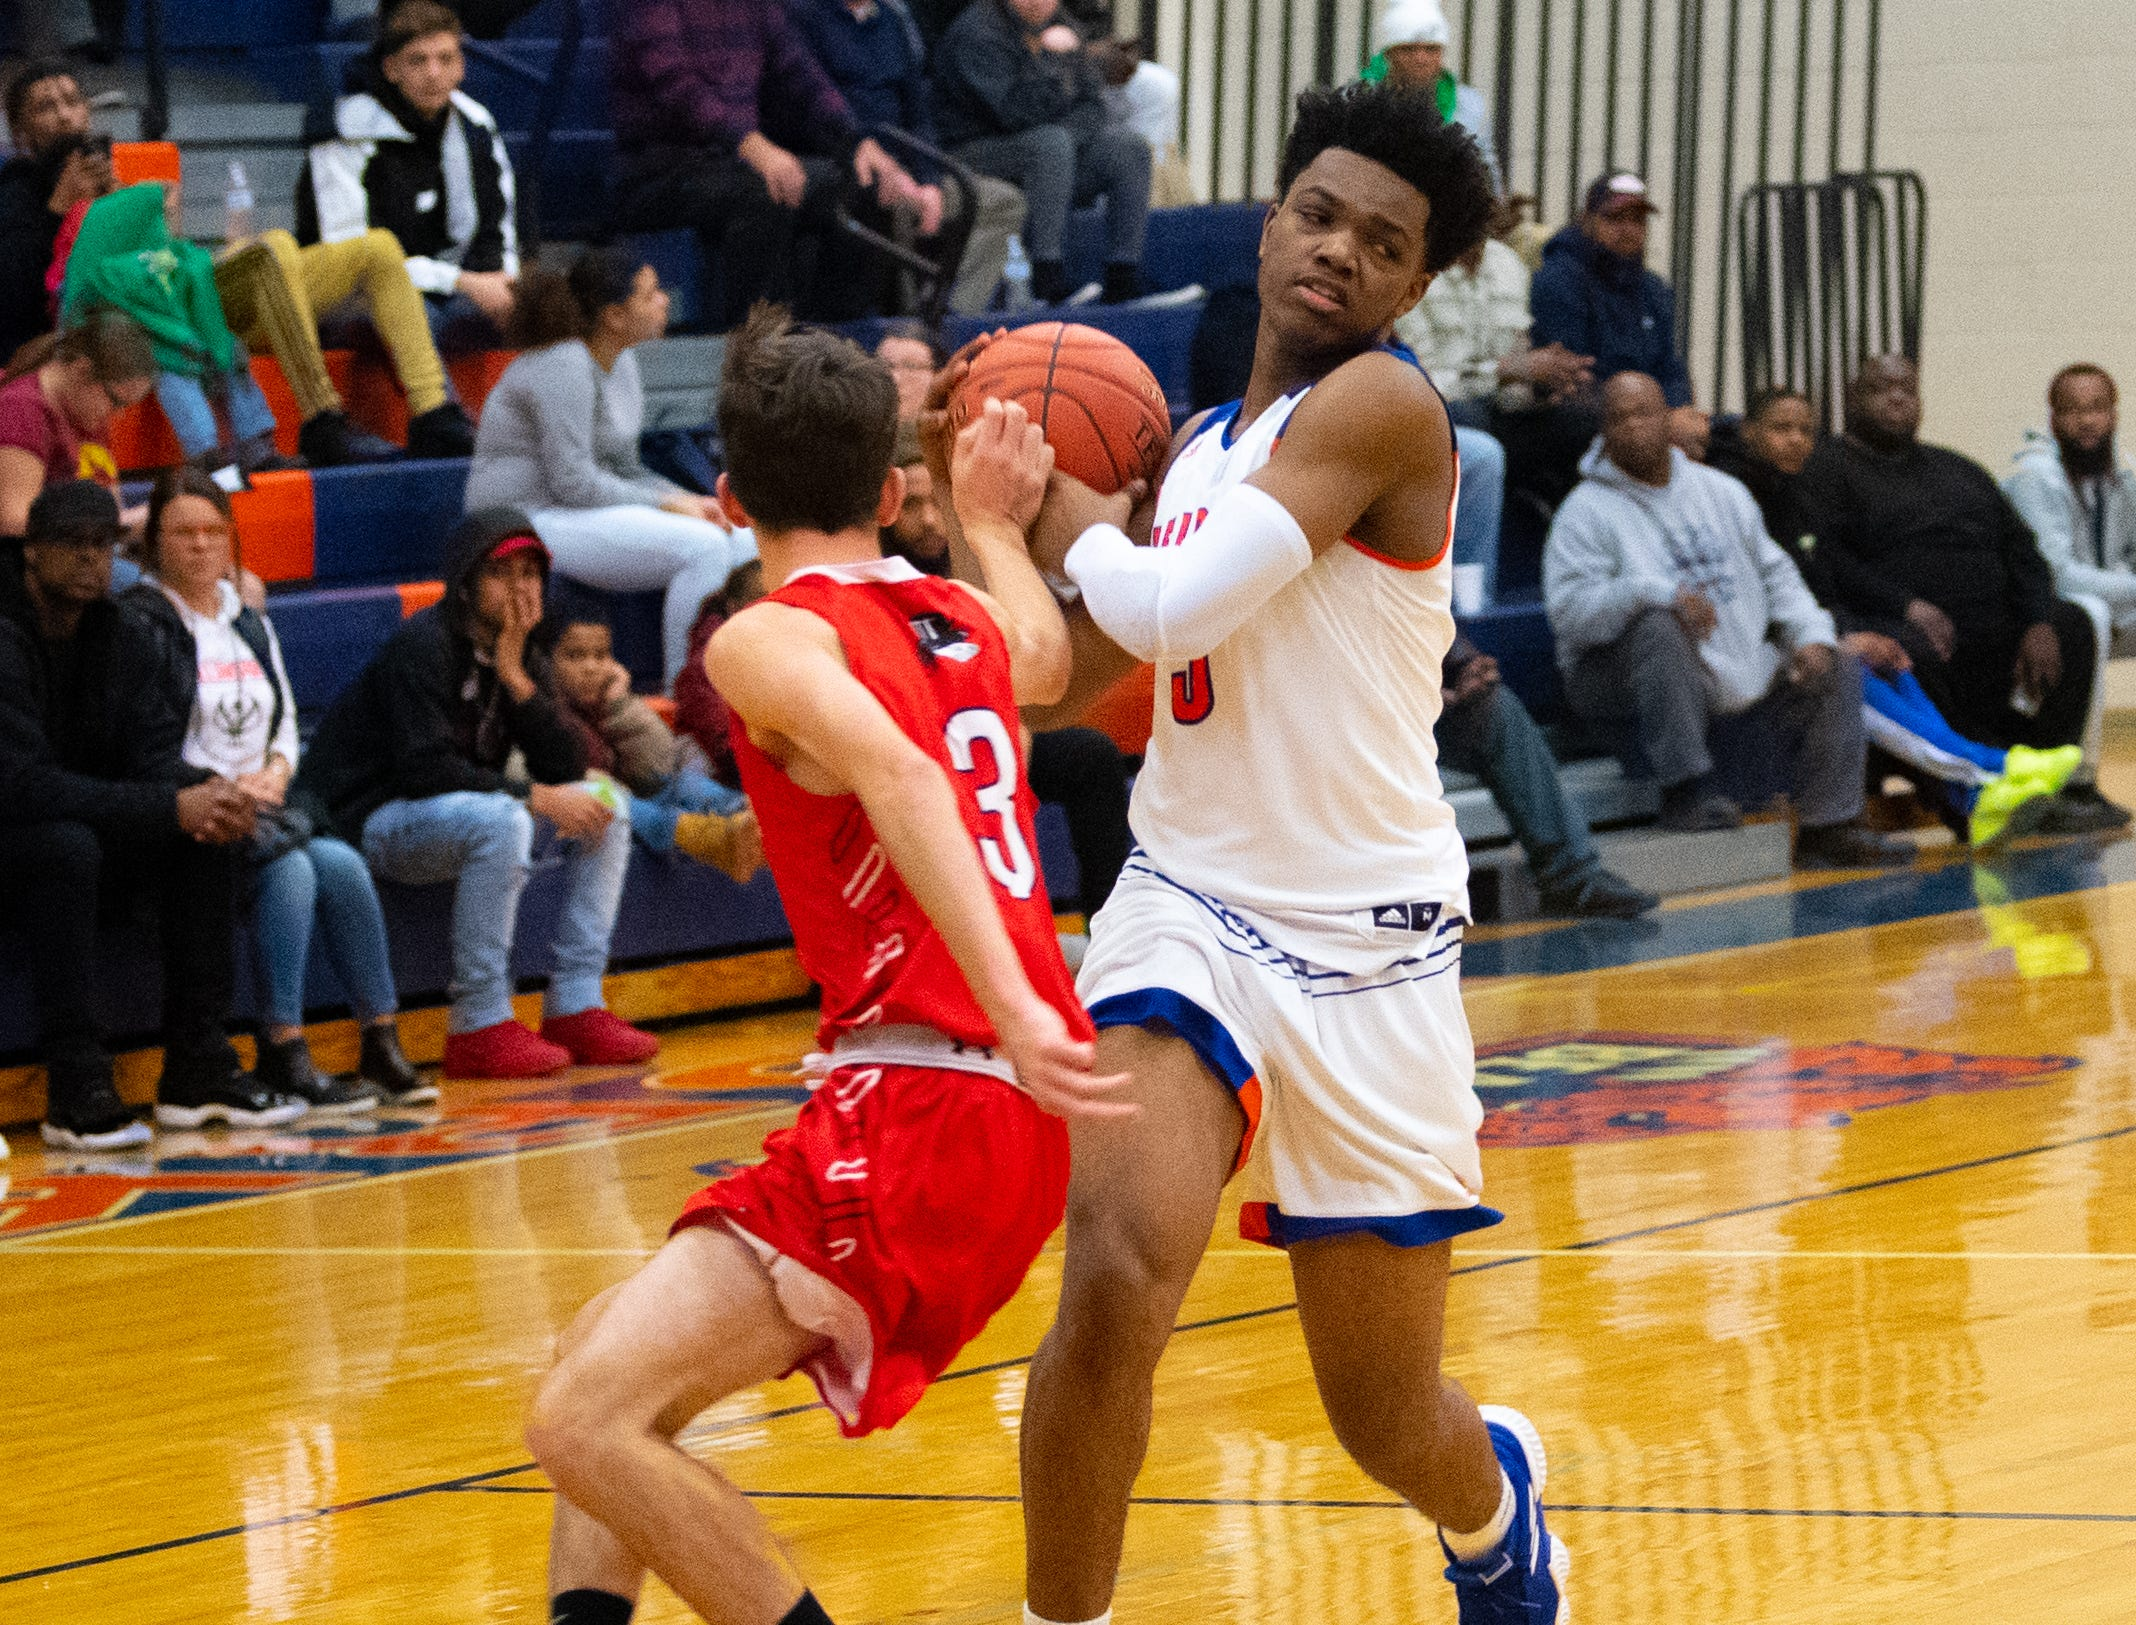 Clovis Gallon Jr. (3) keeps control of the ball during the Tip-Off Tournament championship game between York High and Williamsport at York High, Saturday, December 8, 2018. The Bearcats defeated the Millionaires 74-47.